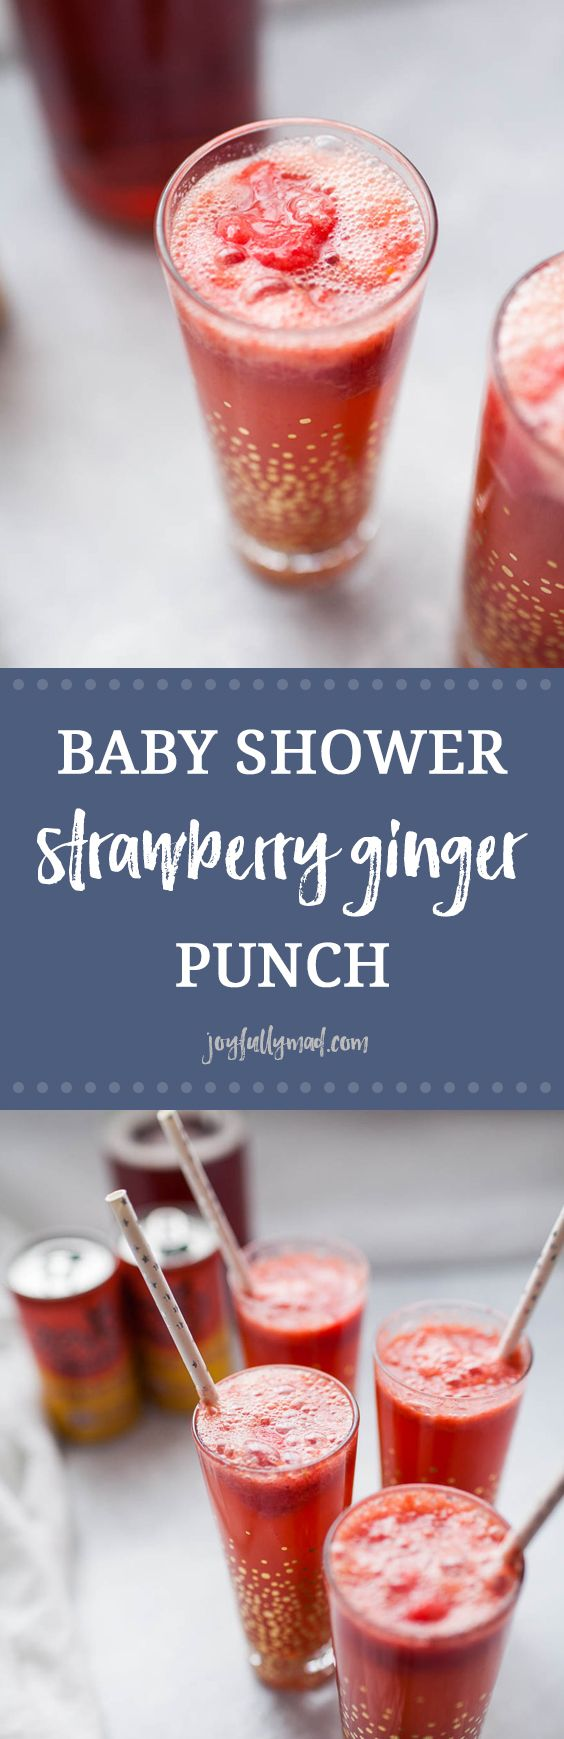 Looking for the perfect, easy drink recipe to serve at a baby shower or brunch? This no sugar added, strawberry ginger punch is perfect for showers, parties, or just for a fun non-alcoholic drink for anytime! It's made with stevia-sweetened ginger beer, homemade strawberry sorbet and a splash of cranberry juice. This punch is flavorful and just sweet enough, without any artificial or added sugars!  via @joyfullymad #ad @zevia